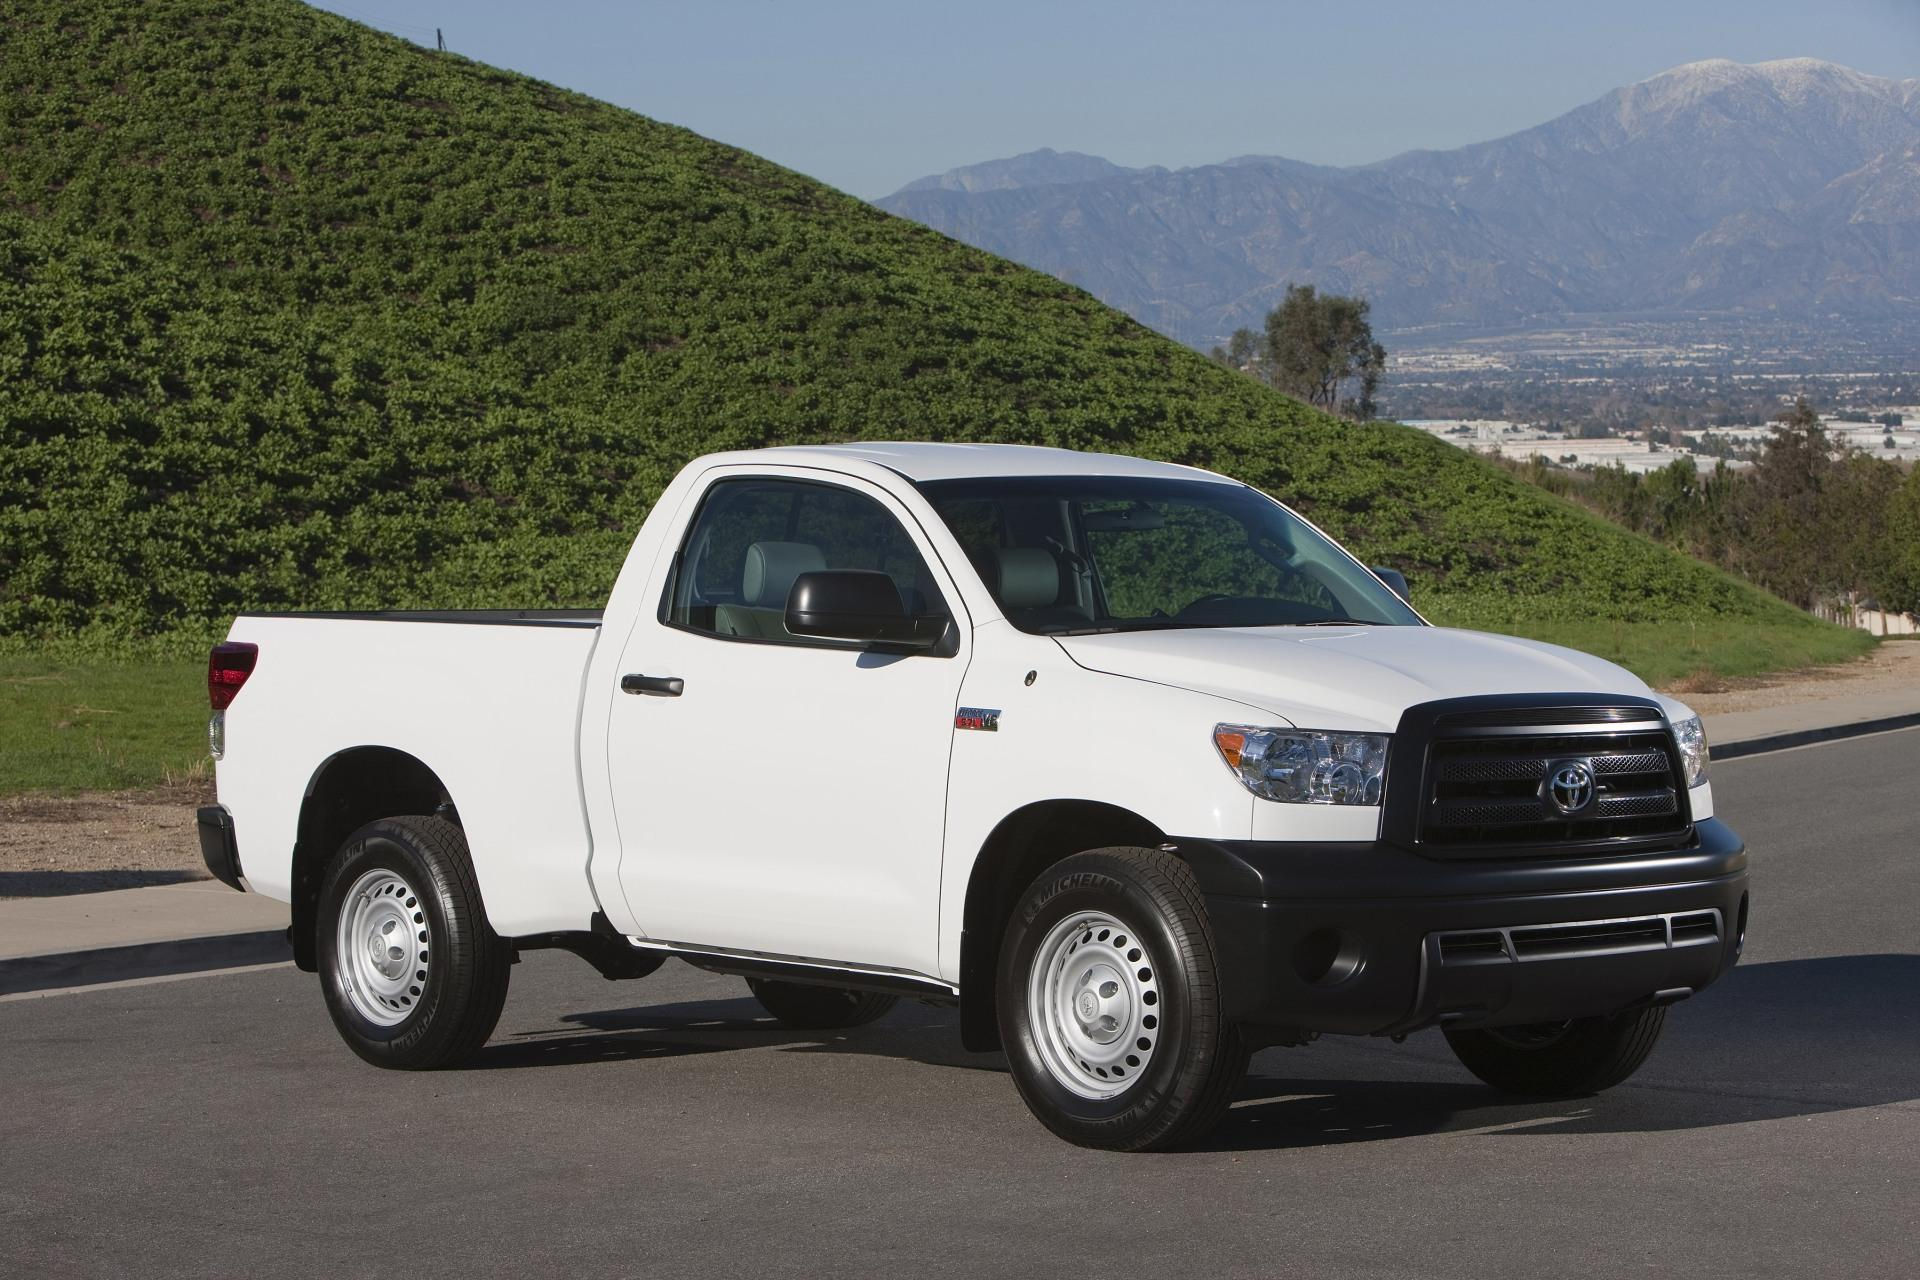 2009 Toyota Tundra Work Truck Package - conceptcarz.com